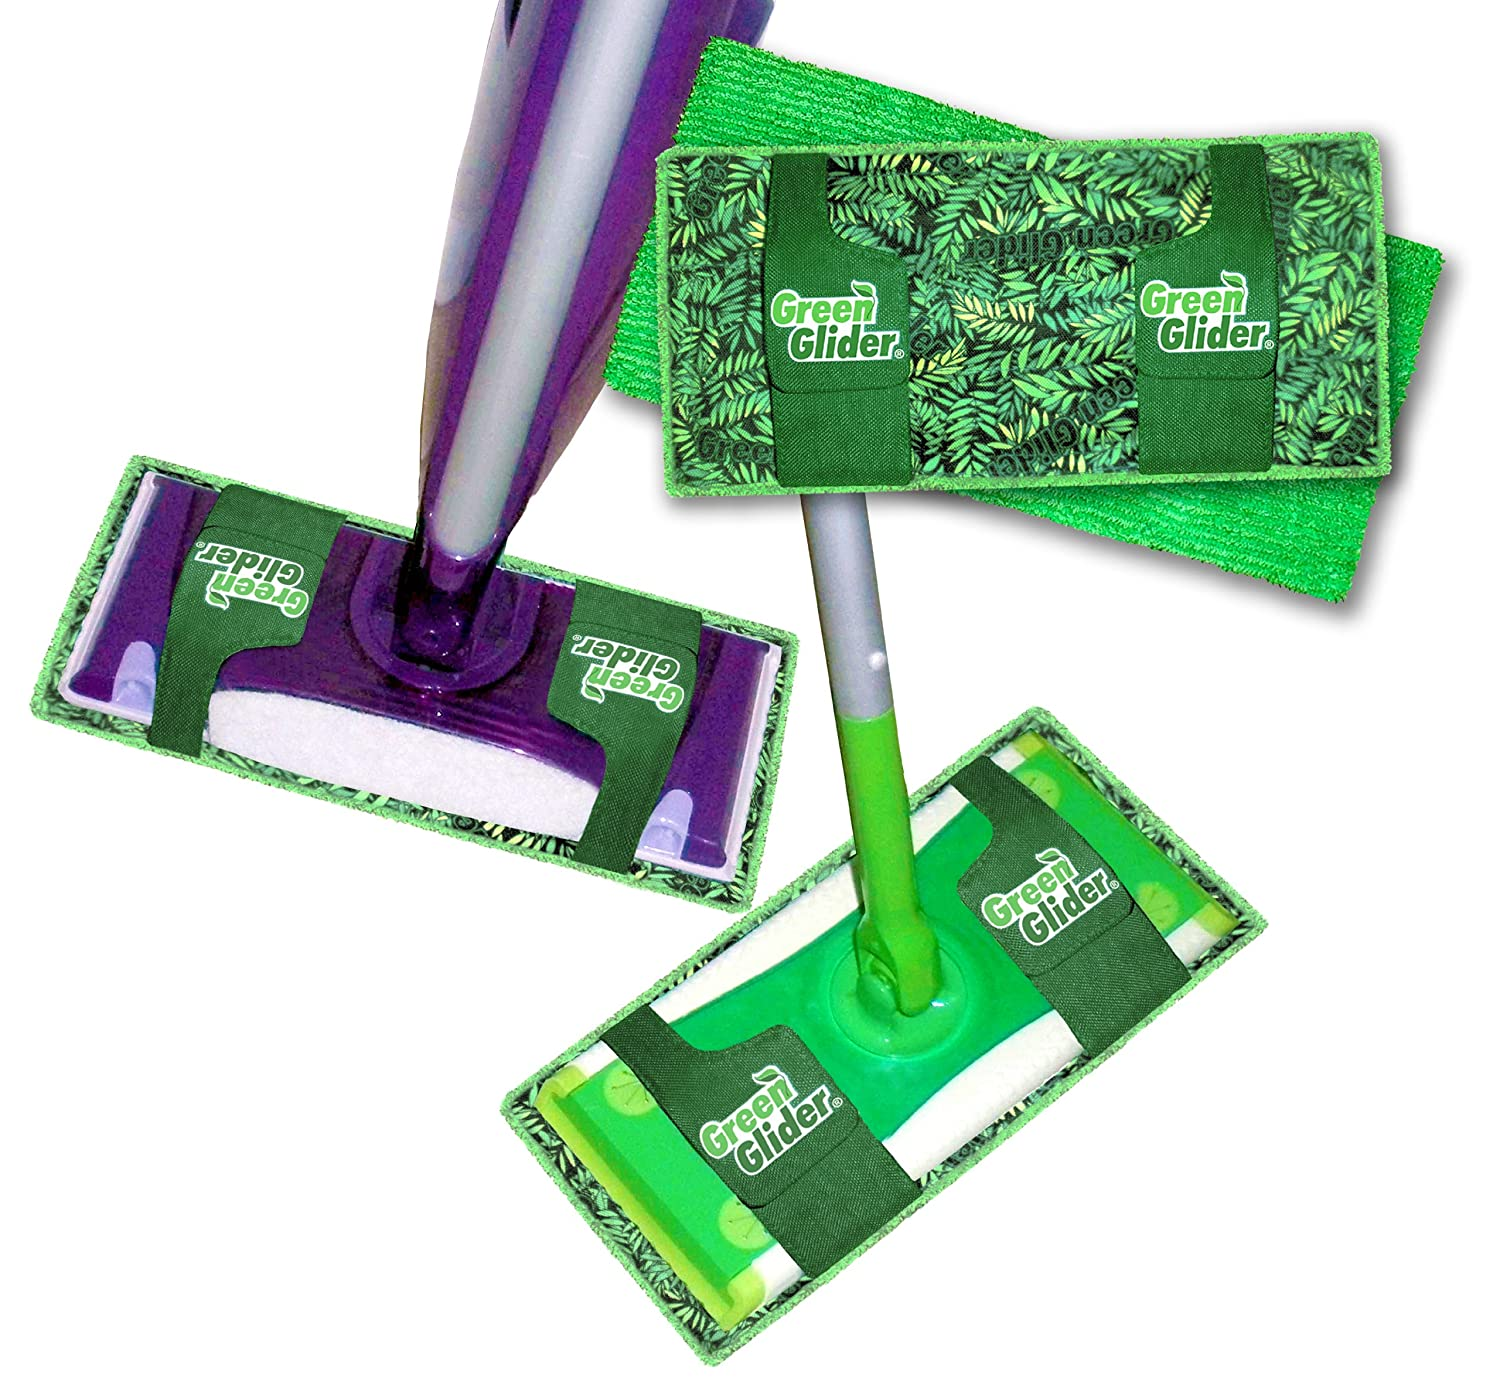 Green Glider Swiffer Reusable Mop Pad! Universal Fit Created Combines Microfiber to Clean Plus Thick Shammy to Absorb! FITS onto Swiffer Wet Jet & Sweeper, Libman, O'cedar ProMist, and More!